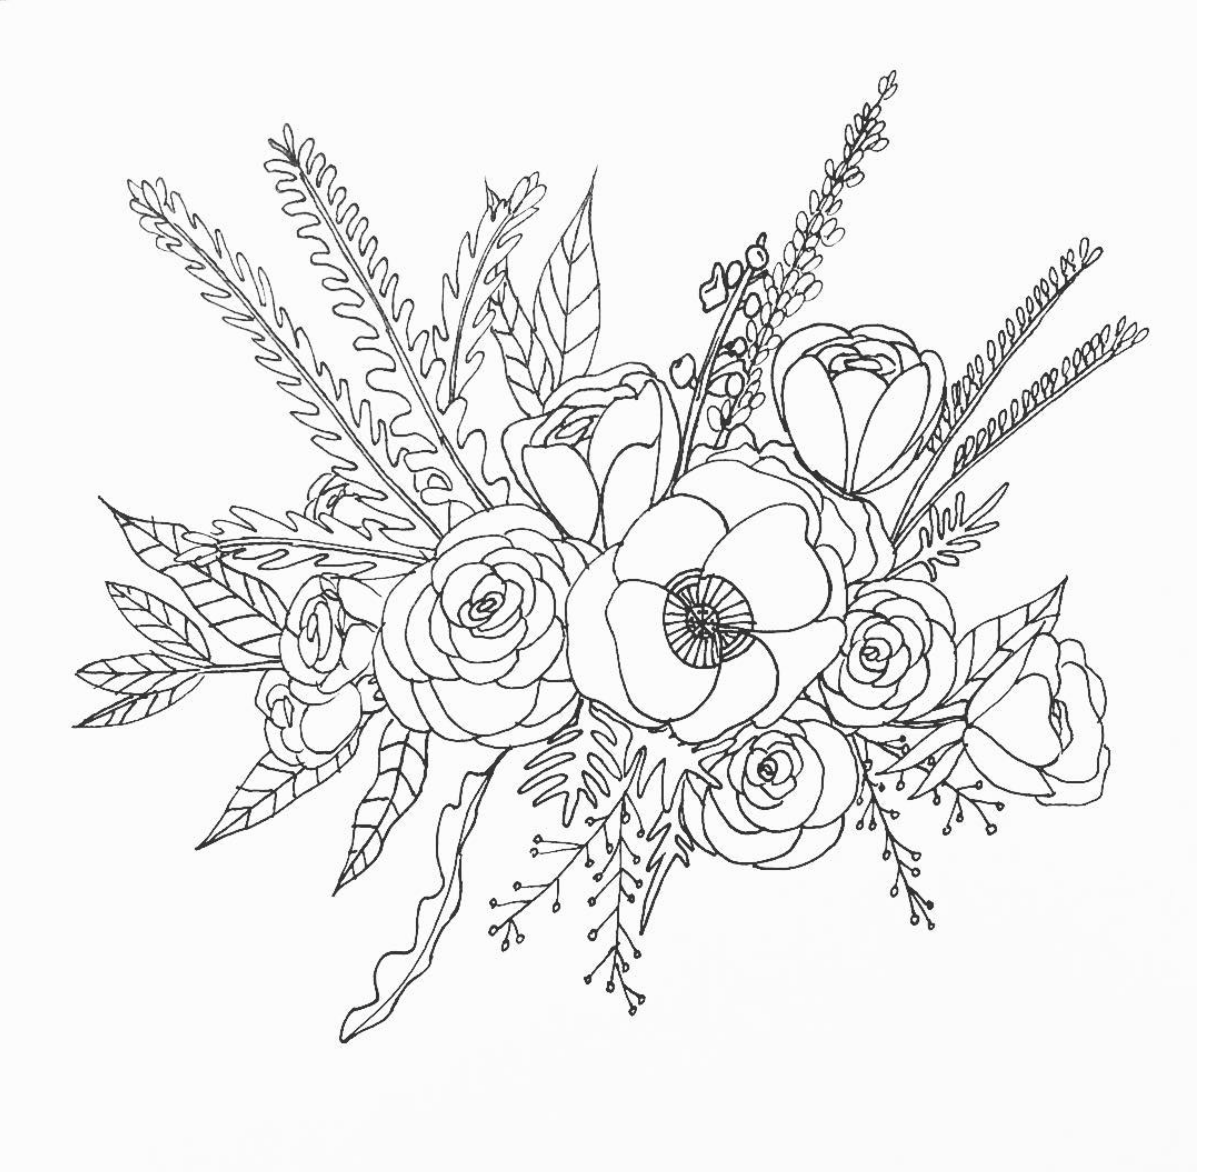 Line Drawing Of Rose Flower : Line drawing flower illustration floral bouquet art